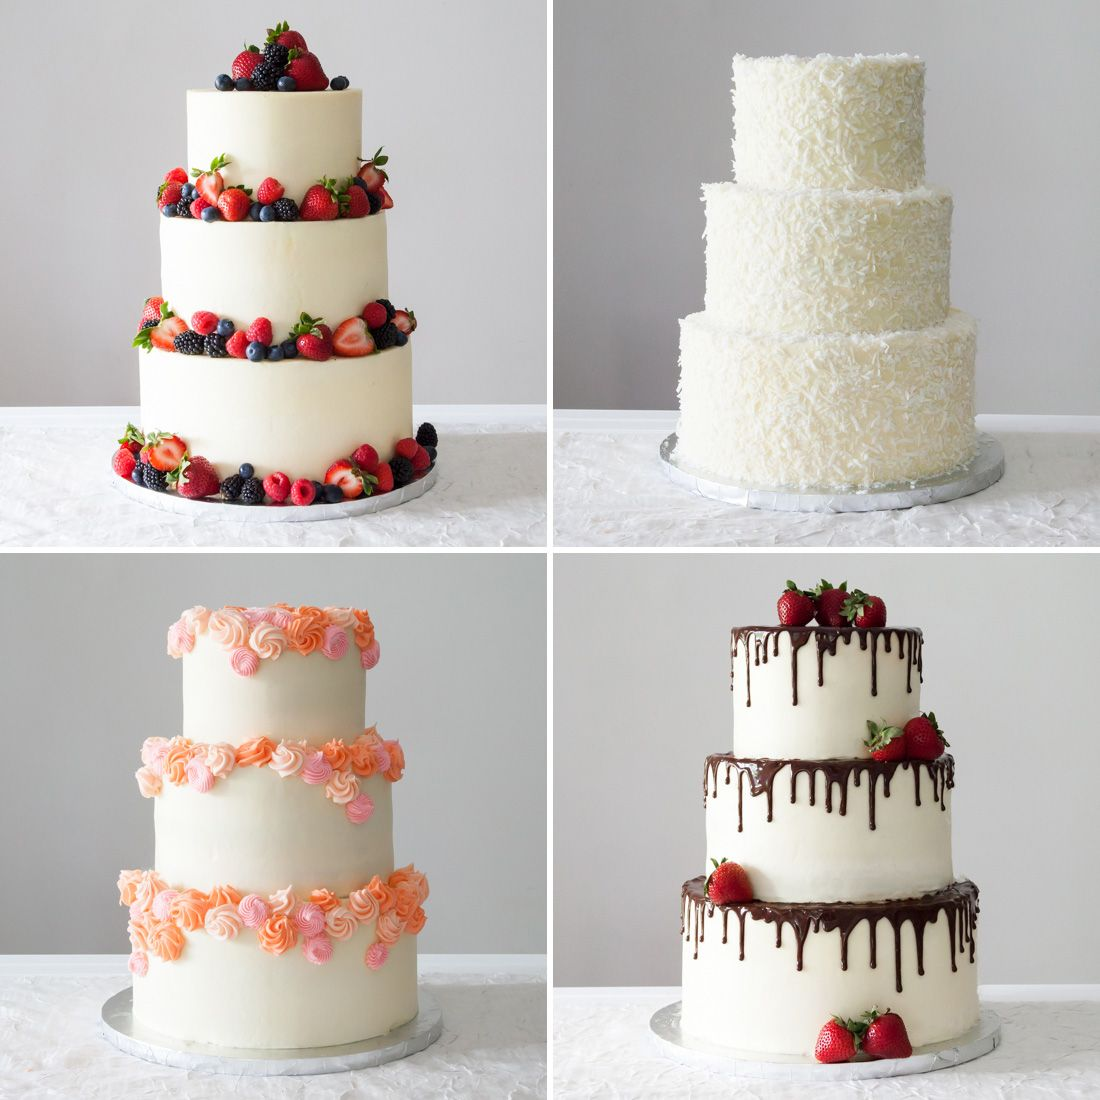 4 Easy Ways To DIY A Wedding Cake